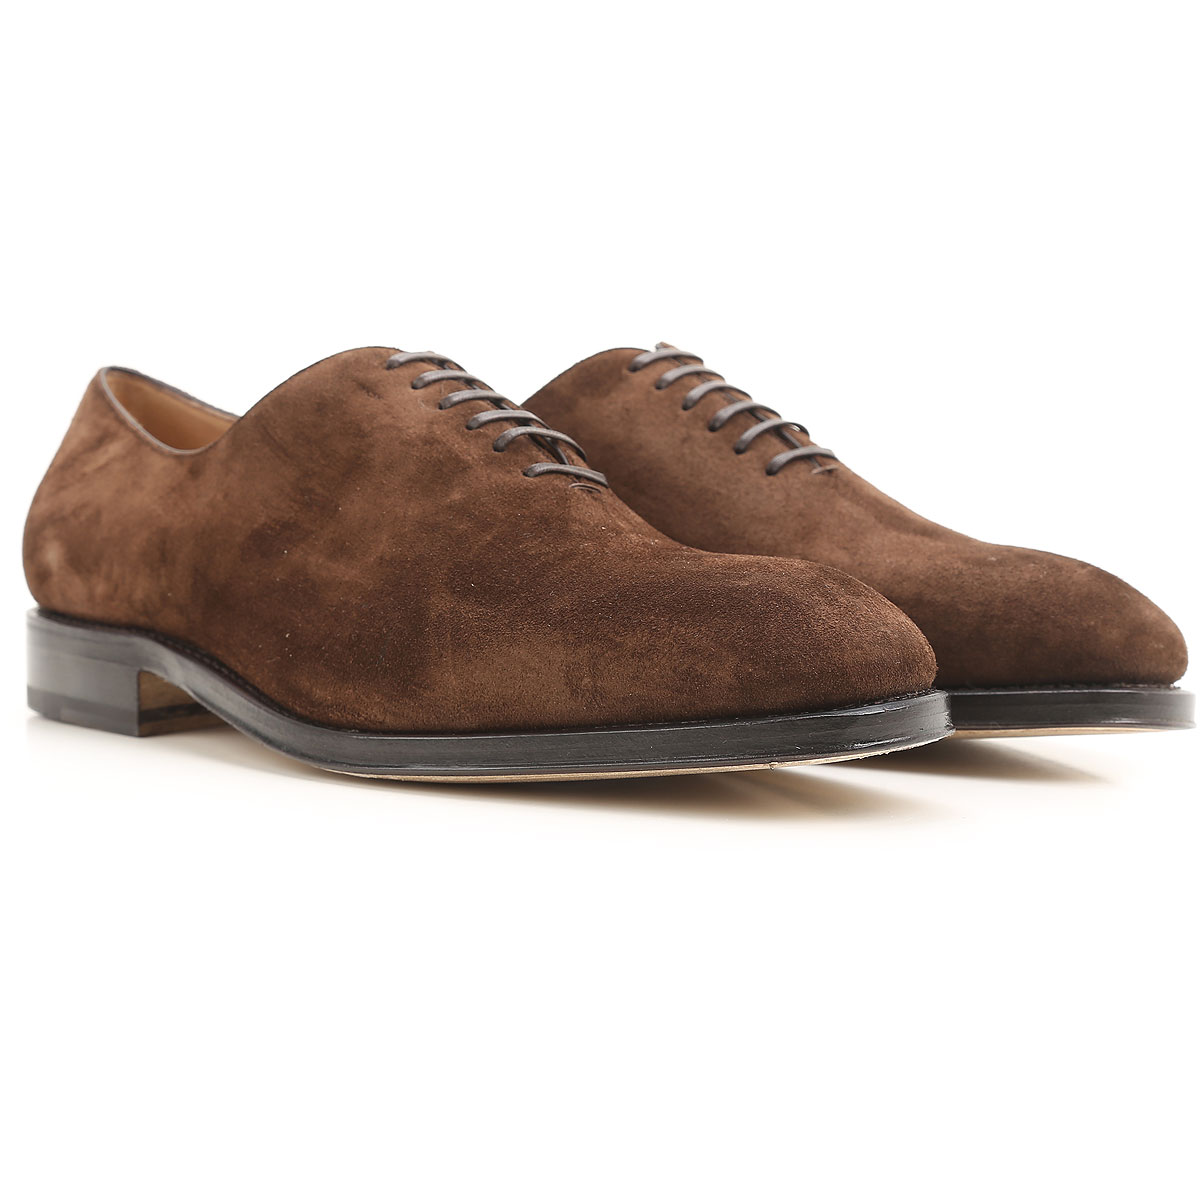 Image of Salvatore Ferragamo Lace Up Shoes for Men Oxfords, Derbies and Brogues, Fondant Chocolate, Suede leather, 2017, 11 8.5